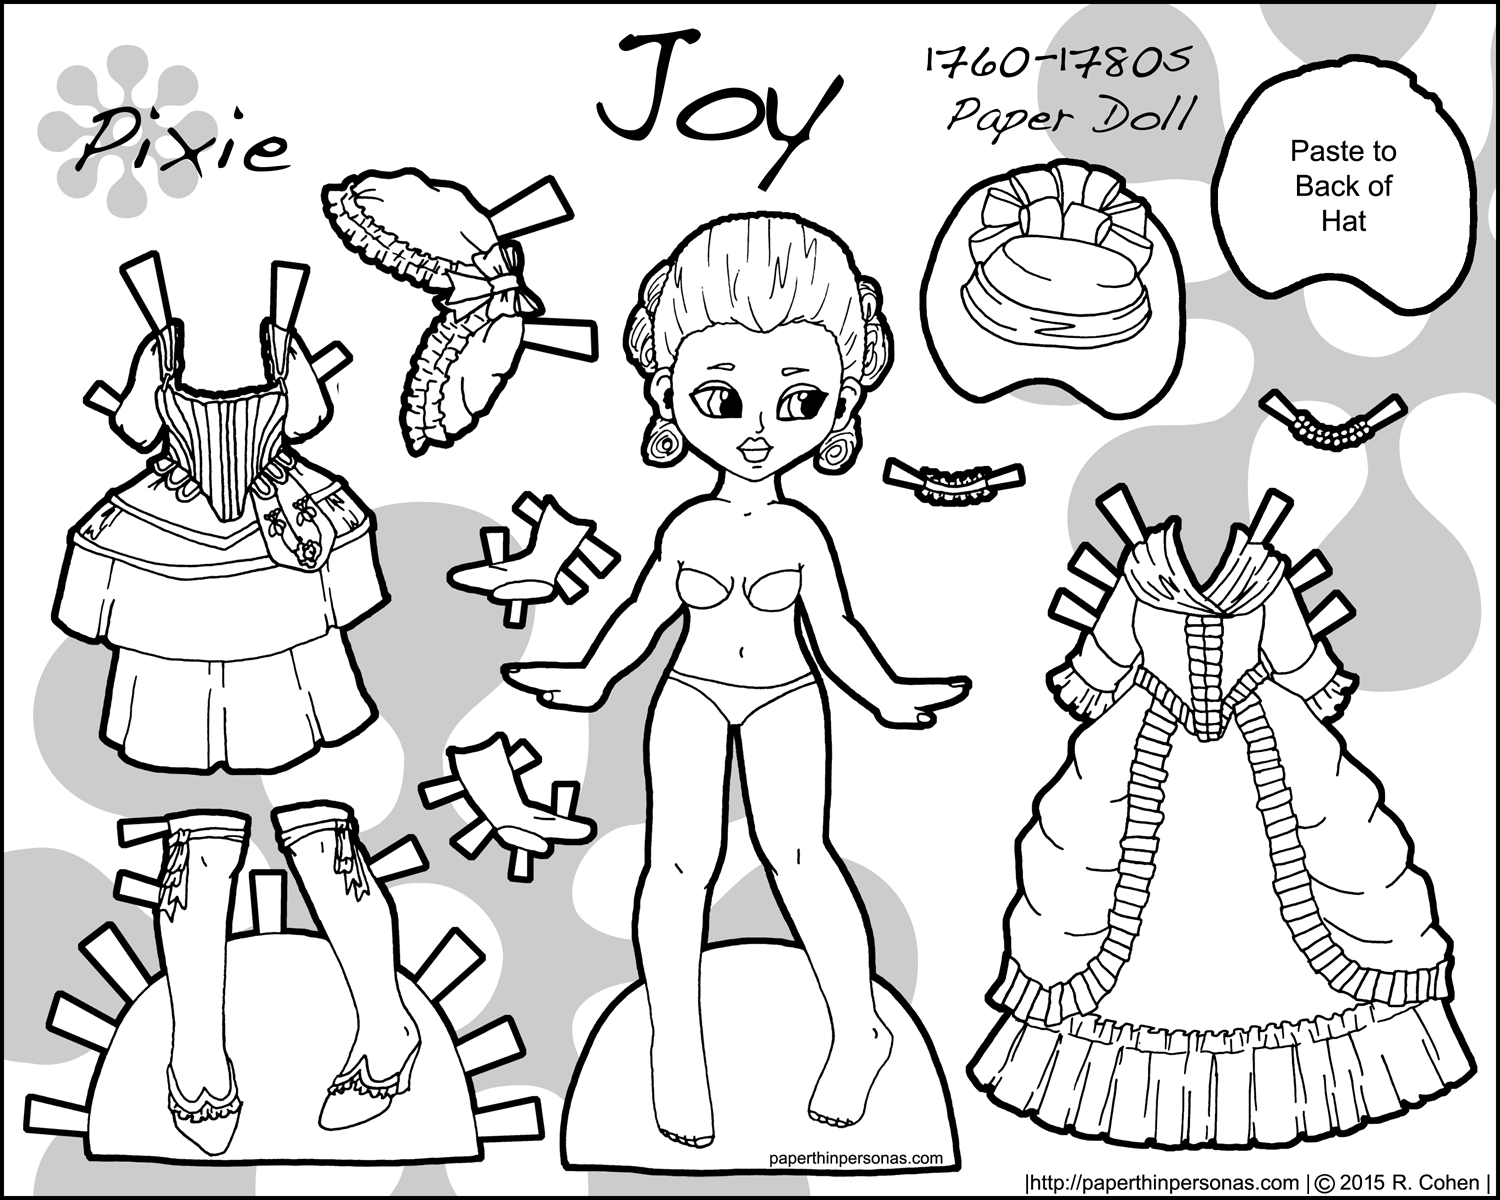 joy an 18th century historical paper doll set u2022 paper thin personas